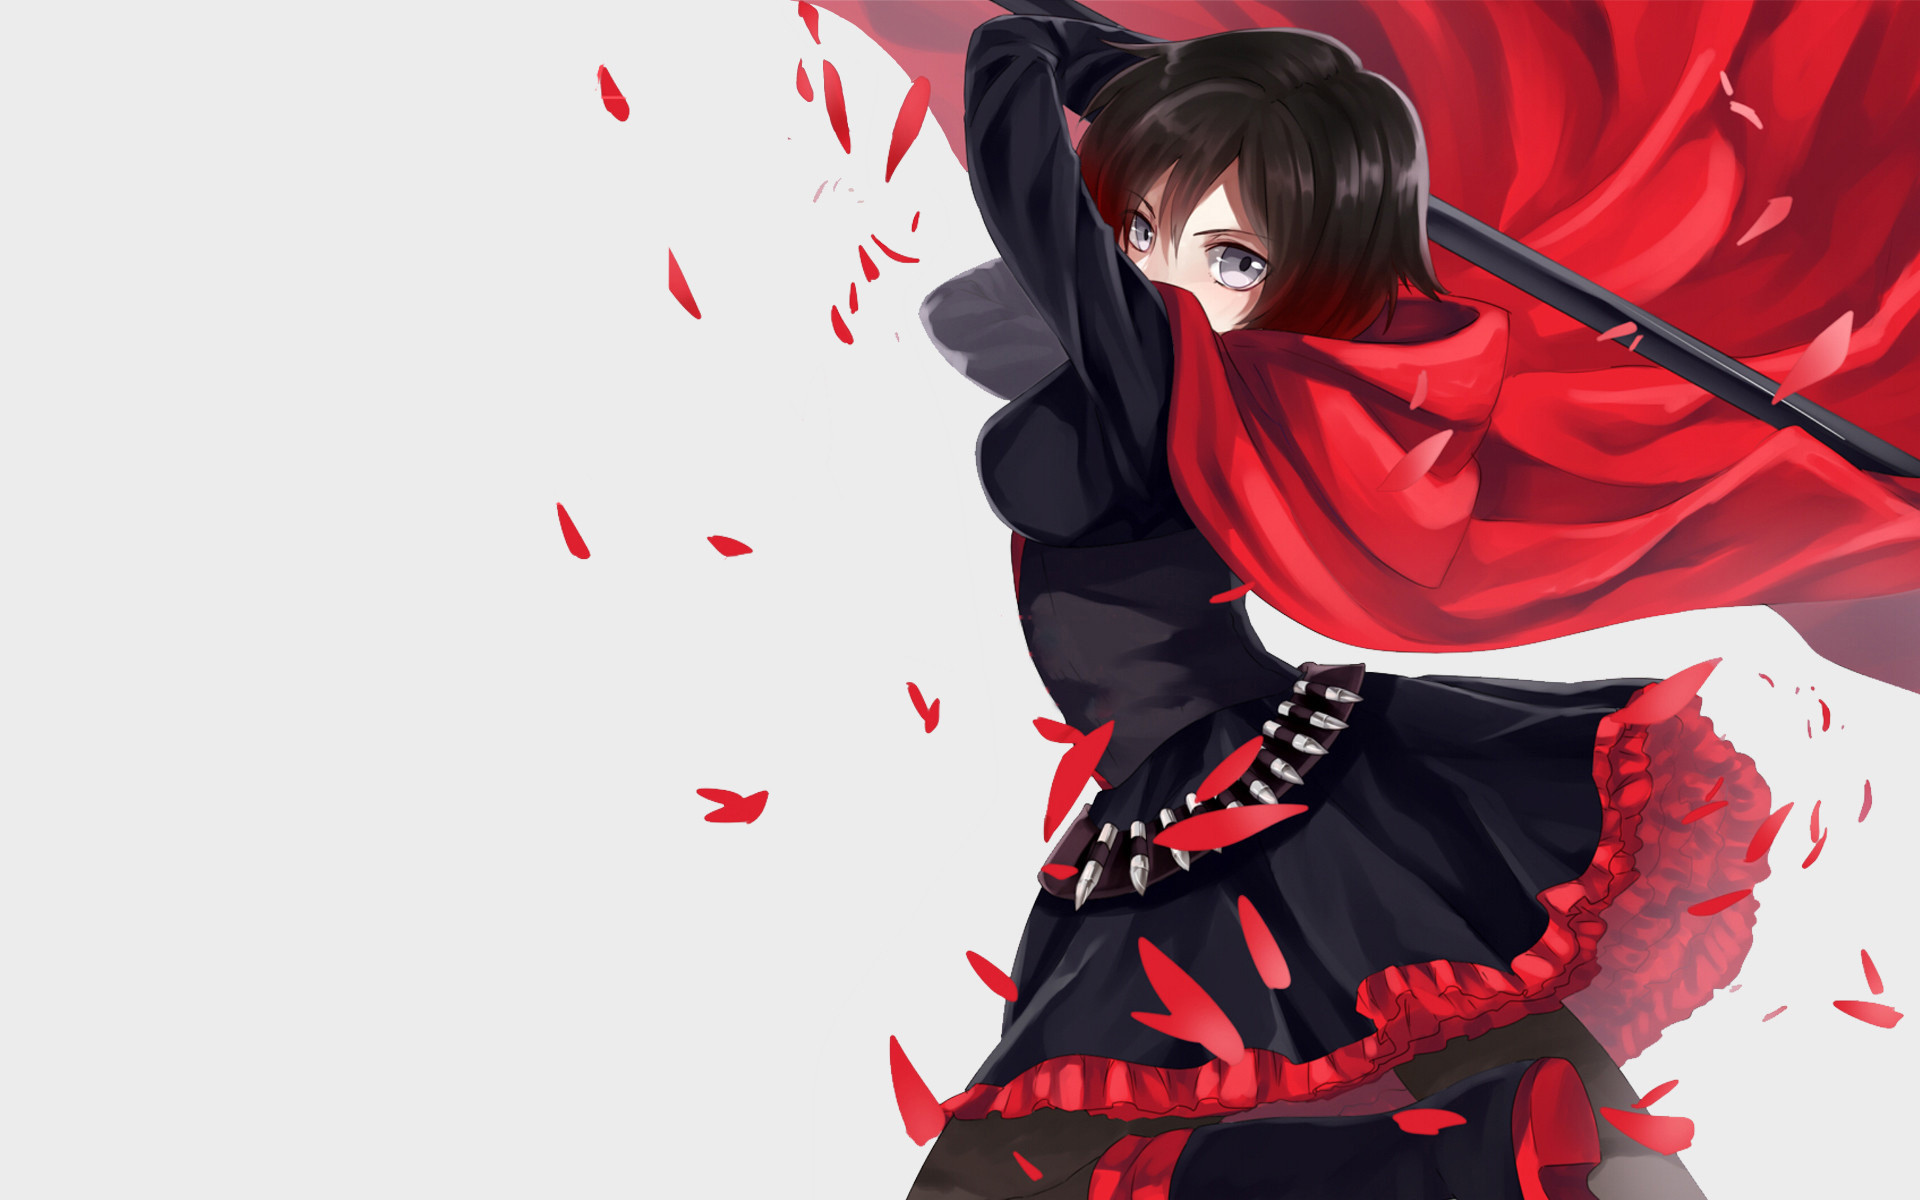 … Anime Wallpapers Anime Girls HD Desktop Backgrounds | Page 3